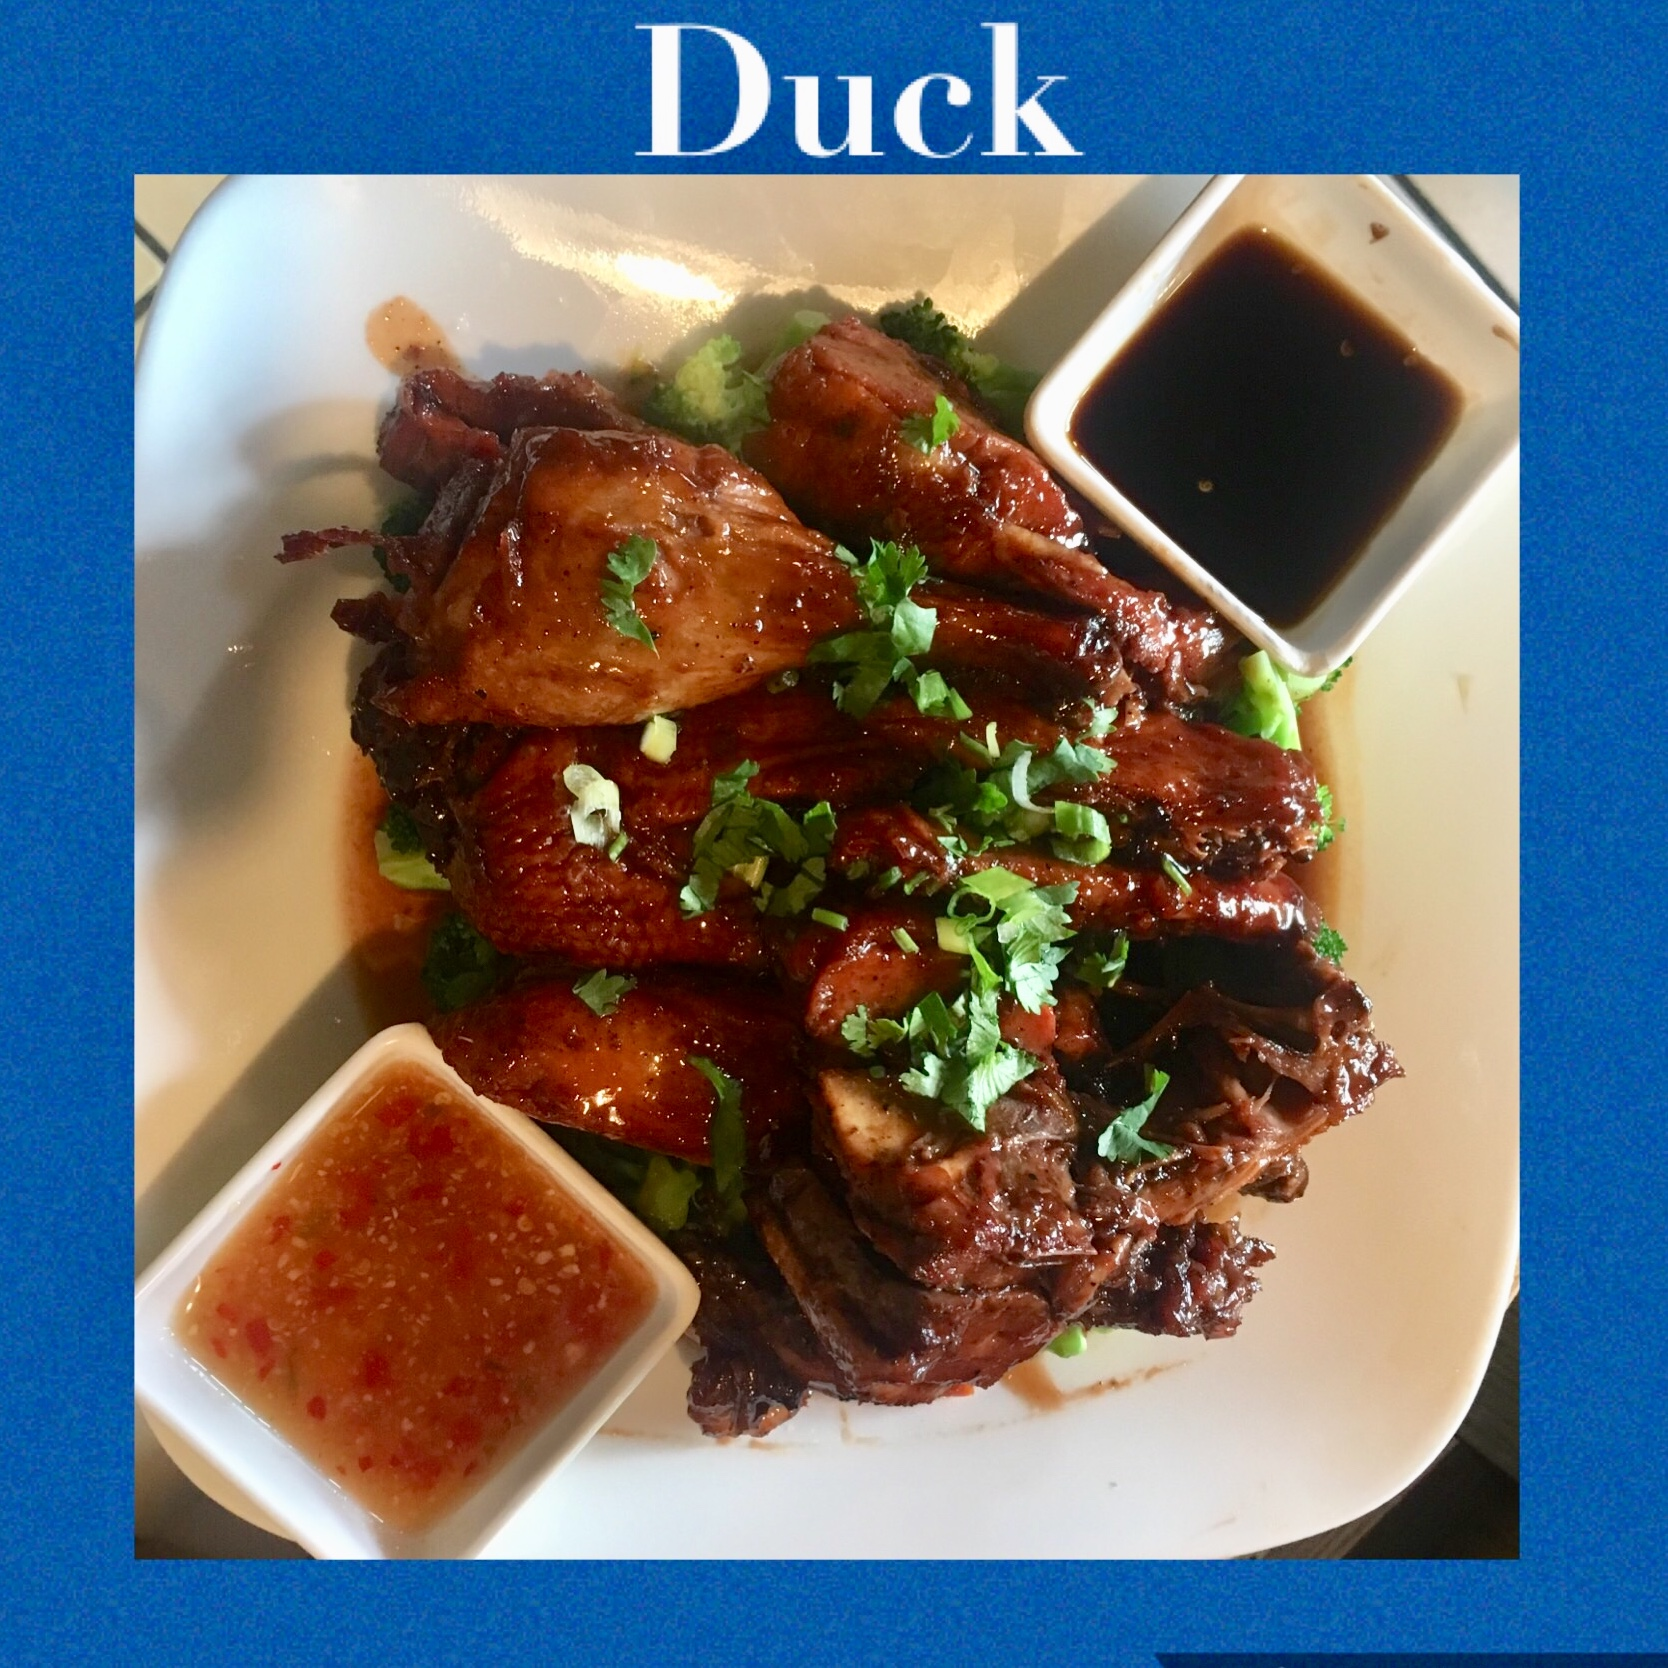 53. ROASTED DUCK (HALF/WHOLE)